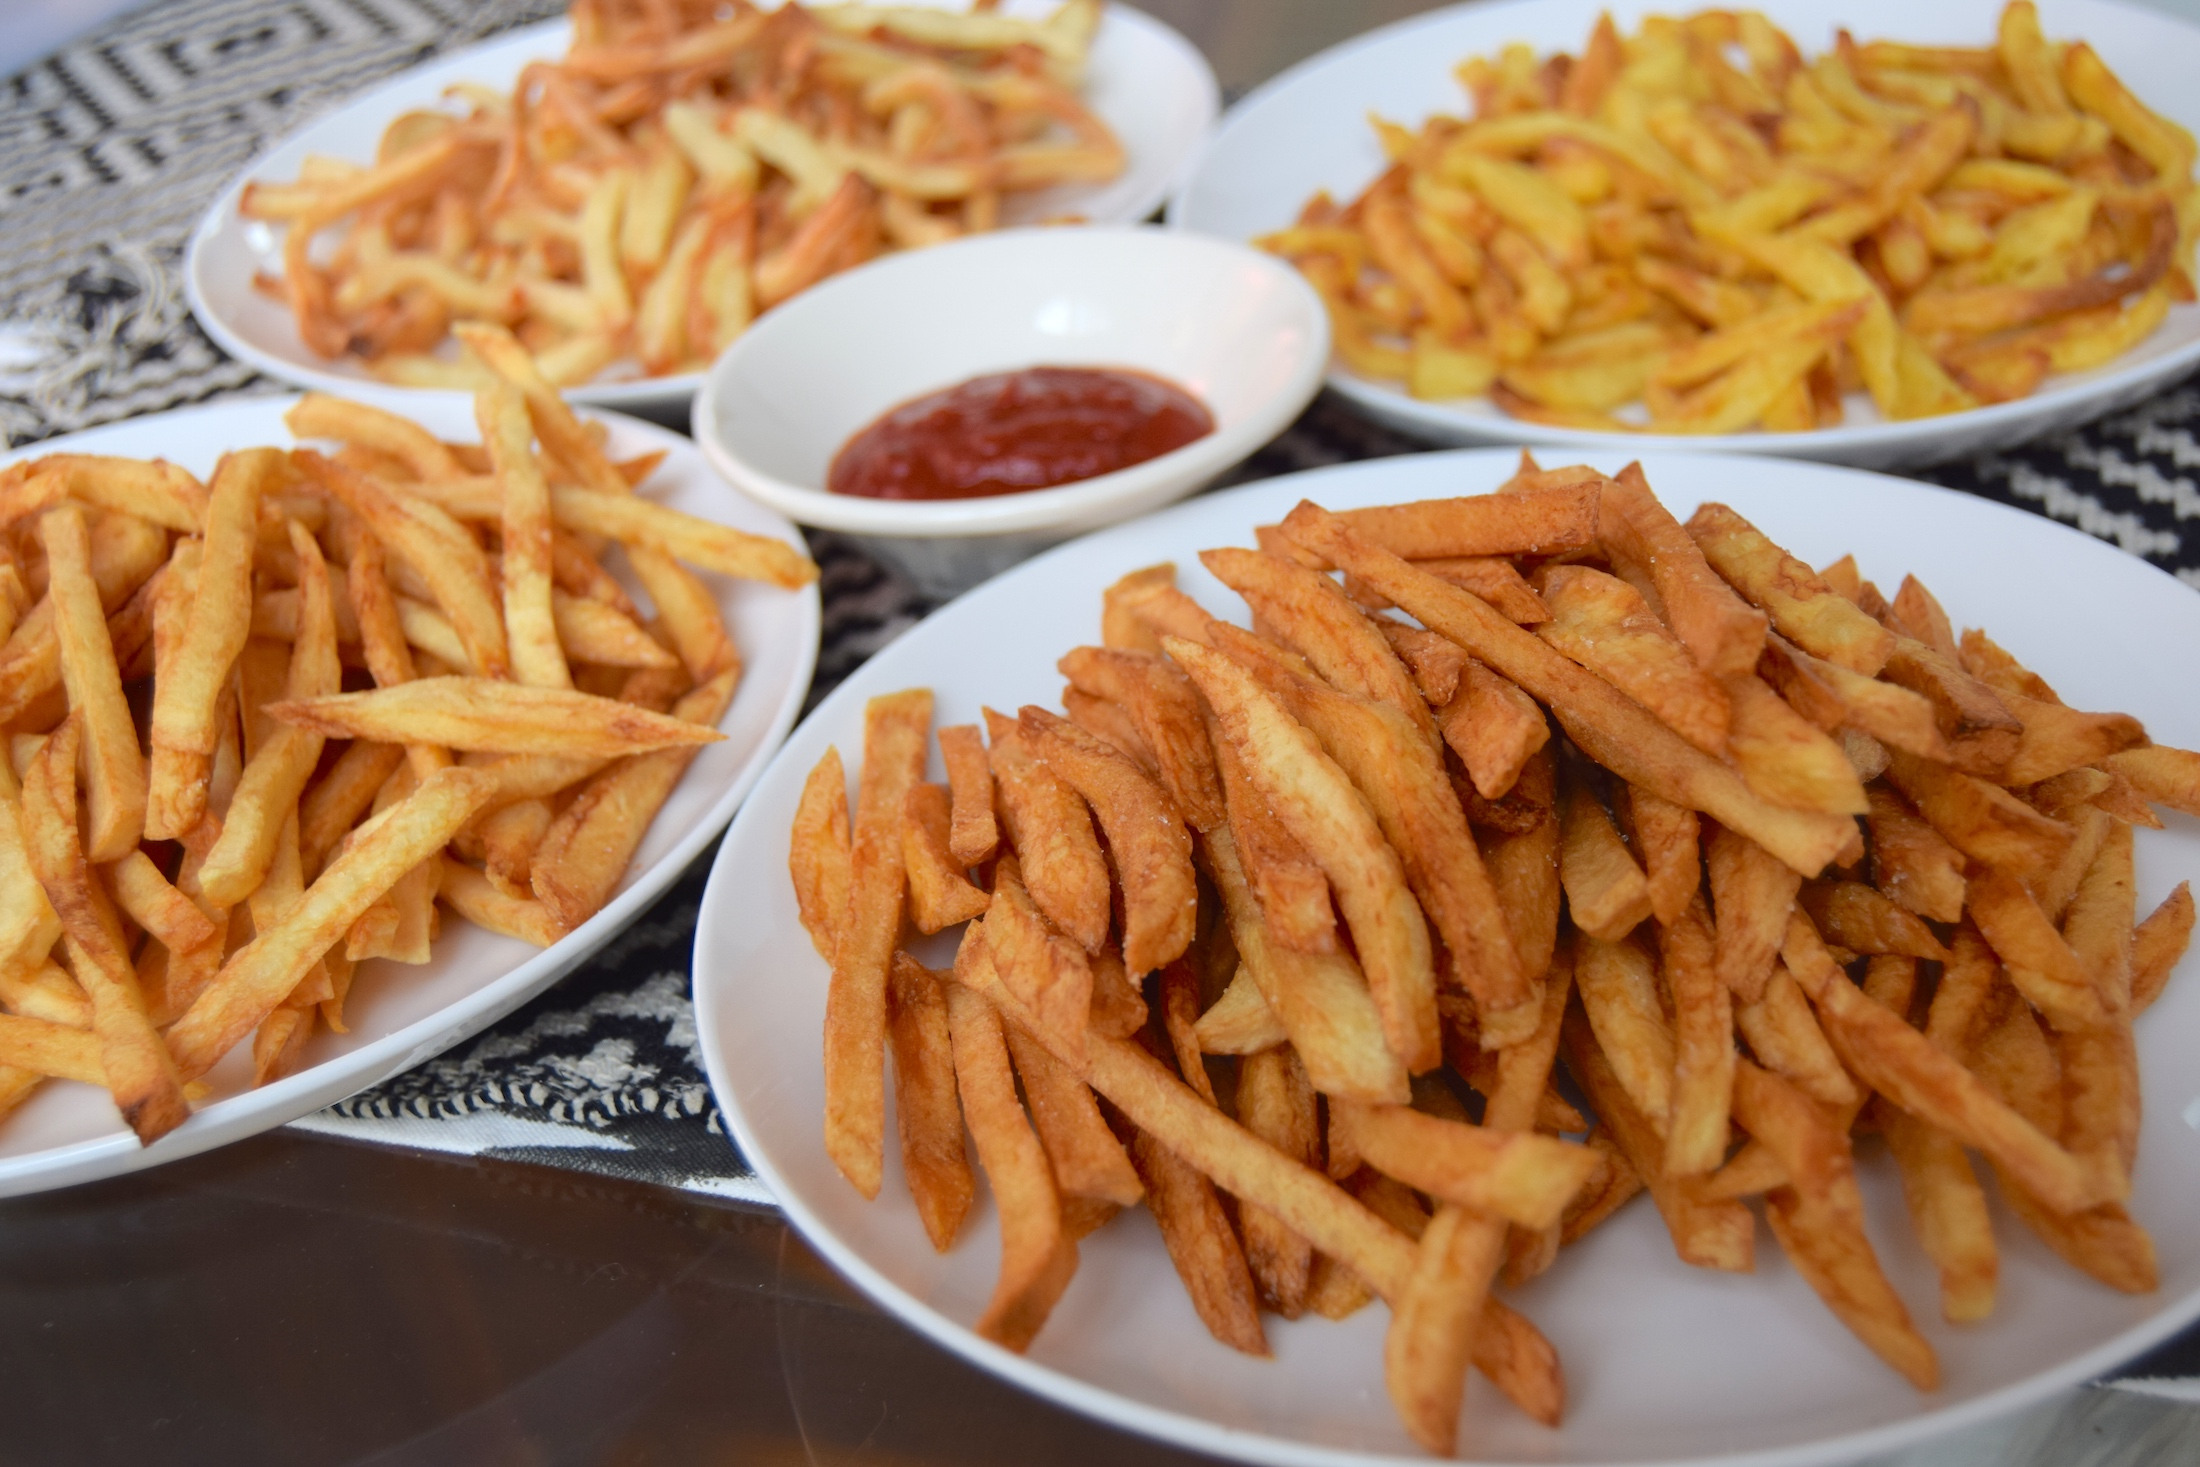 How to cook french fries in my air fryer